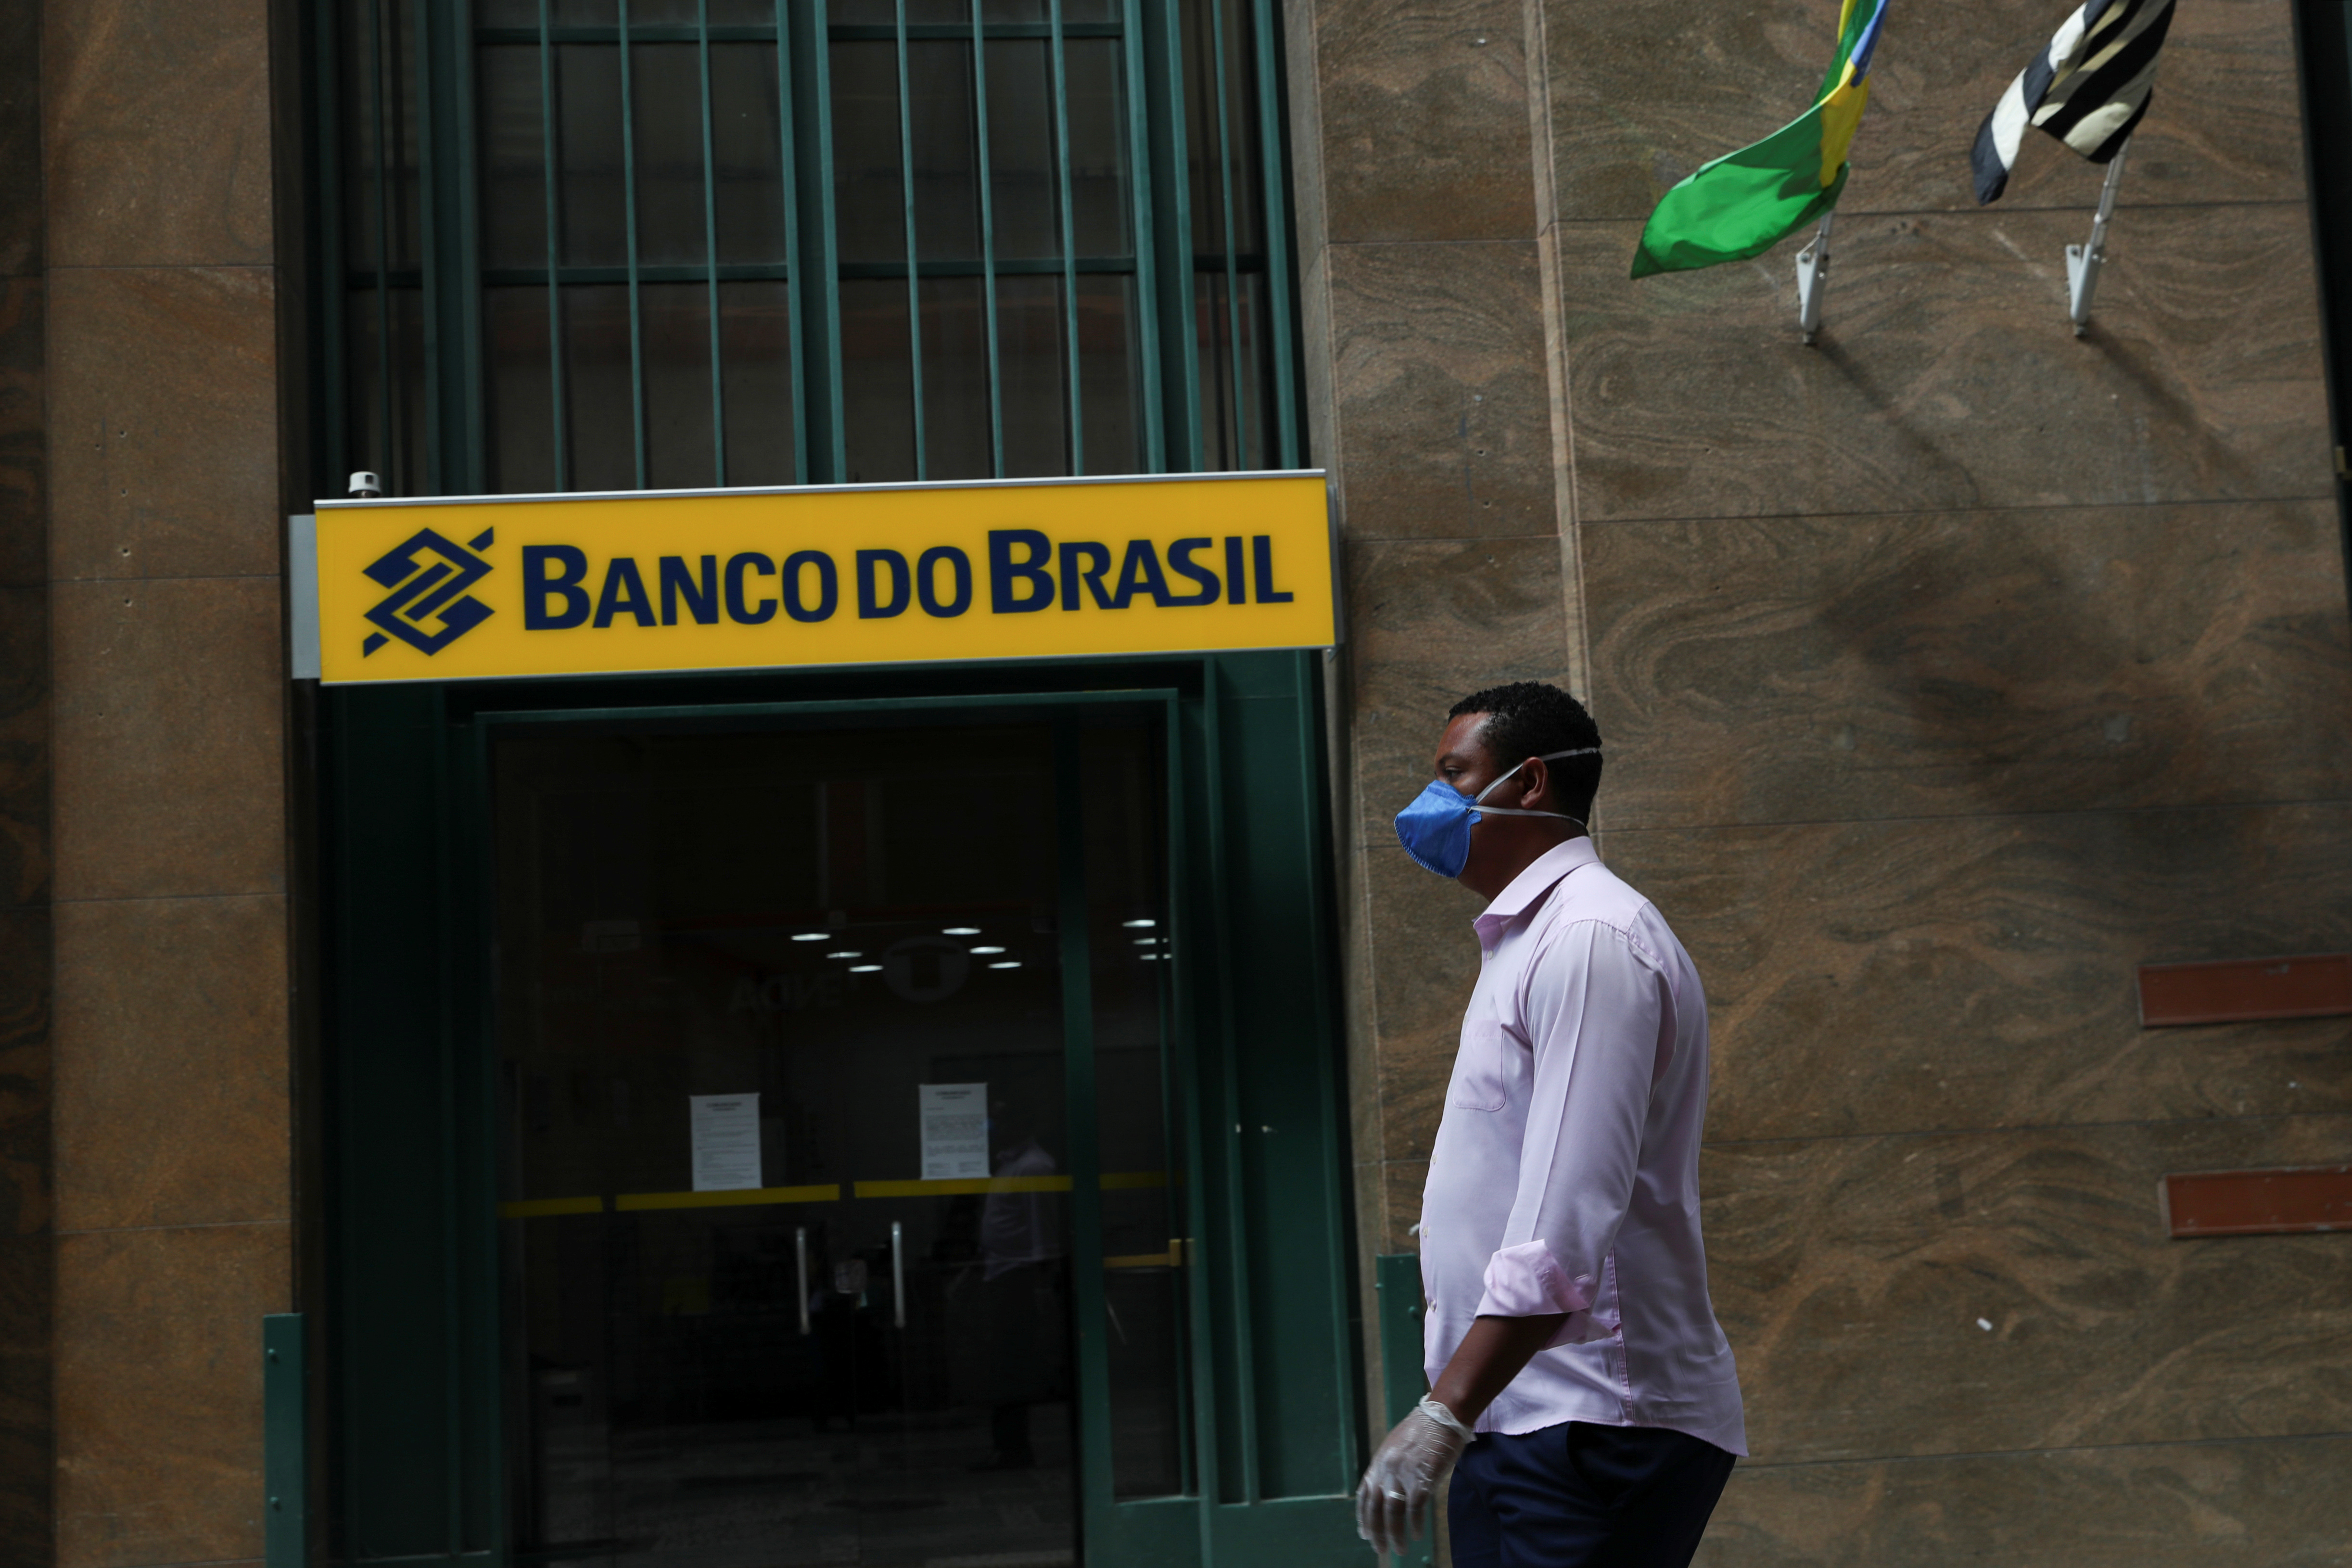 A man wearing a protective face mask and gloves walks in front of Banco do Brasil (Bank of Brazil) during the coronavirus disease (COVID-19) outbreak in Sao Paulo, Brazil, March 24, 2020. REUTERS/Amanda Perobelli/File Photo